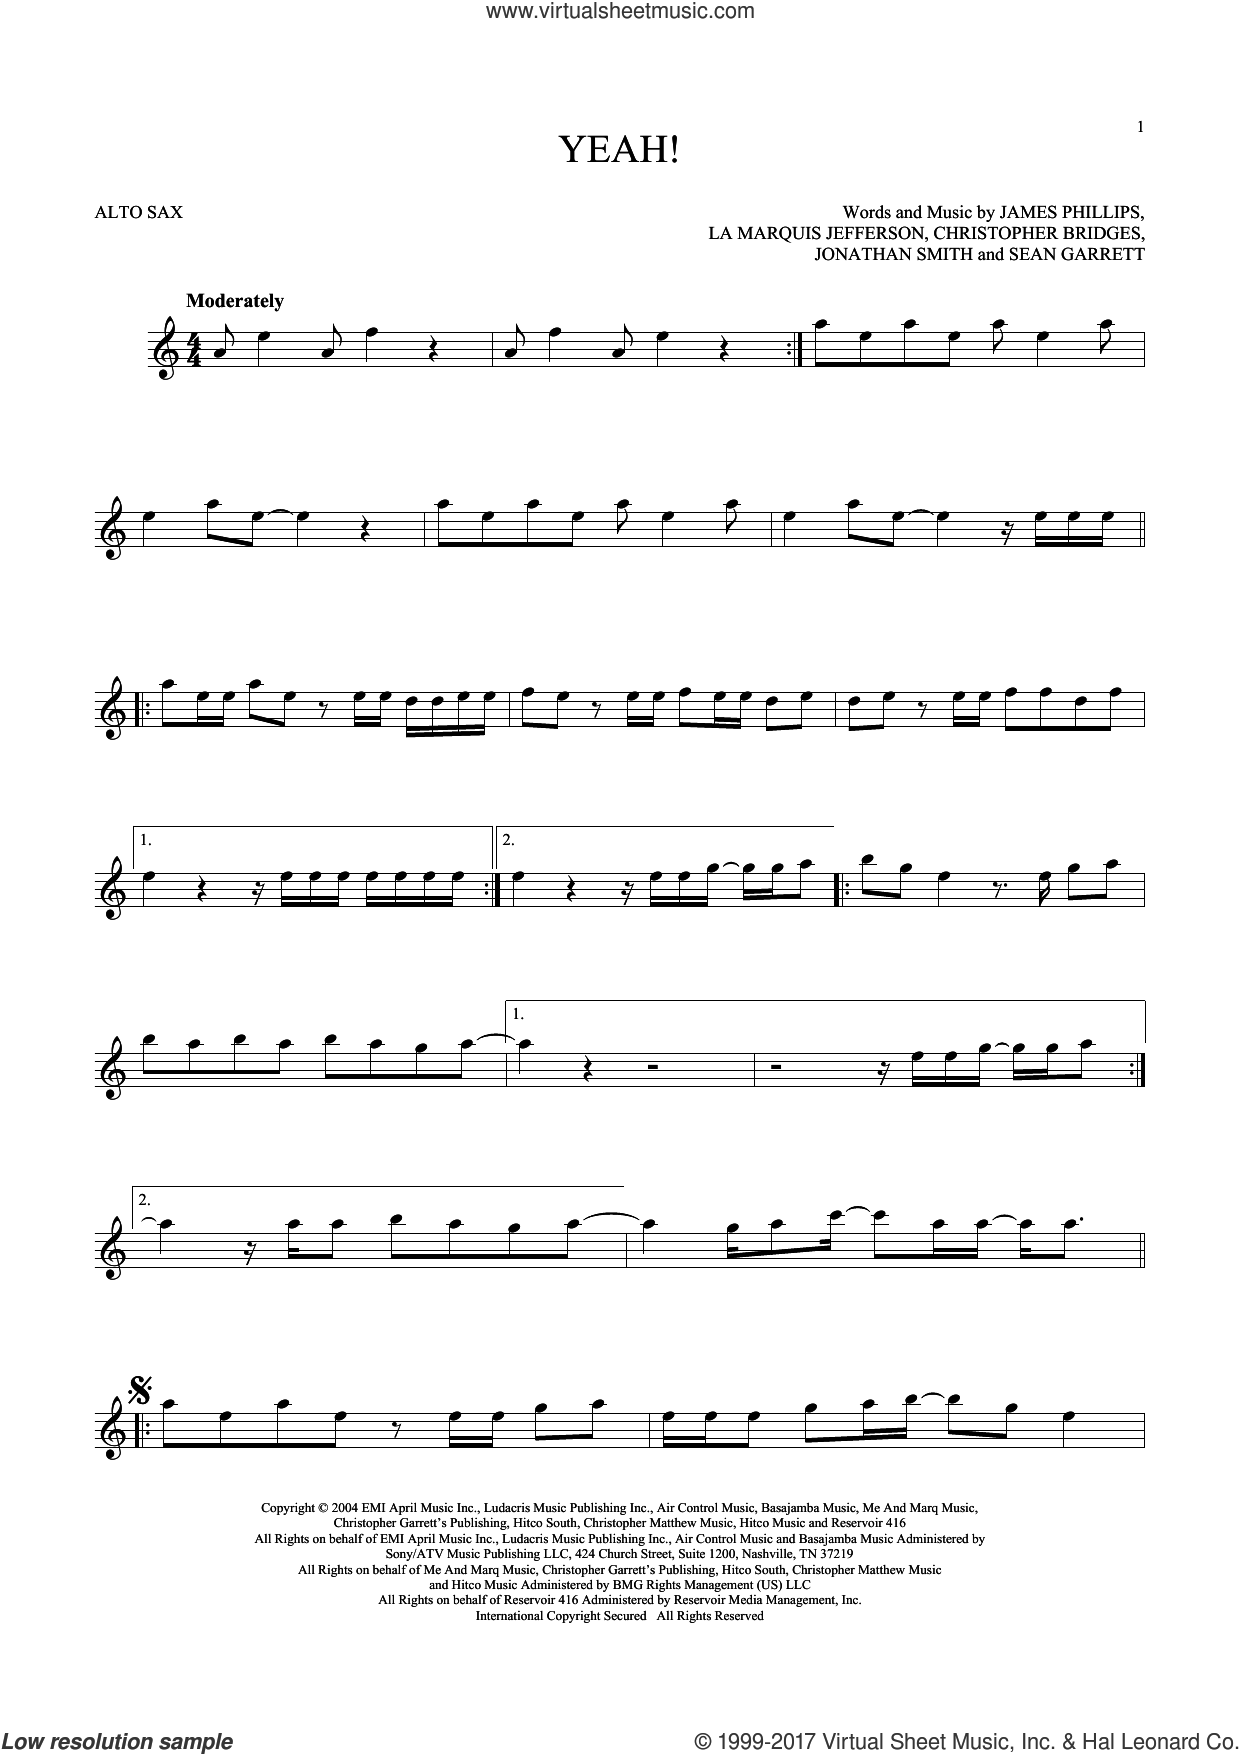 Yeah! sheet music for alto saxophone solo by Usher featuring Lil Jon & Ludacris, Christopher Bridges, James Phillips, Jonathan Smith, La Marquis Jefferson, Laurence Smith and Sean Garrett, intermediate skill level